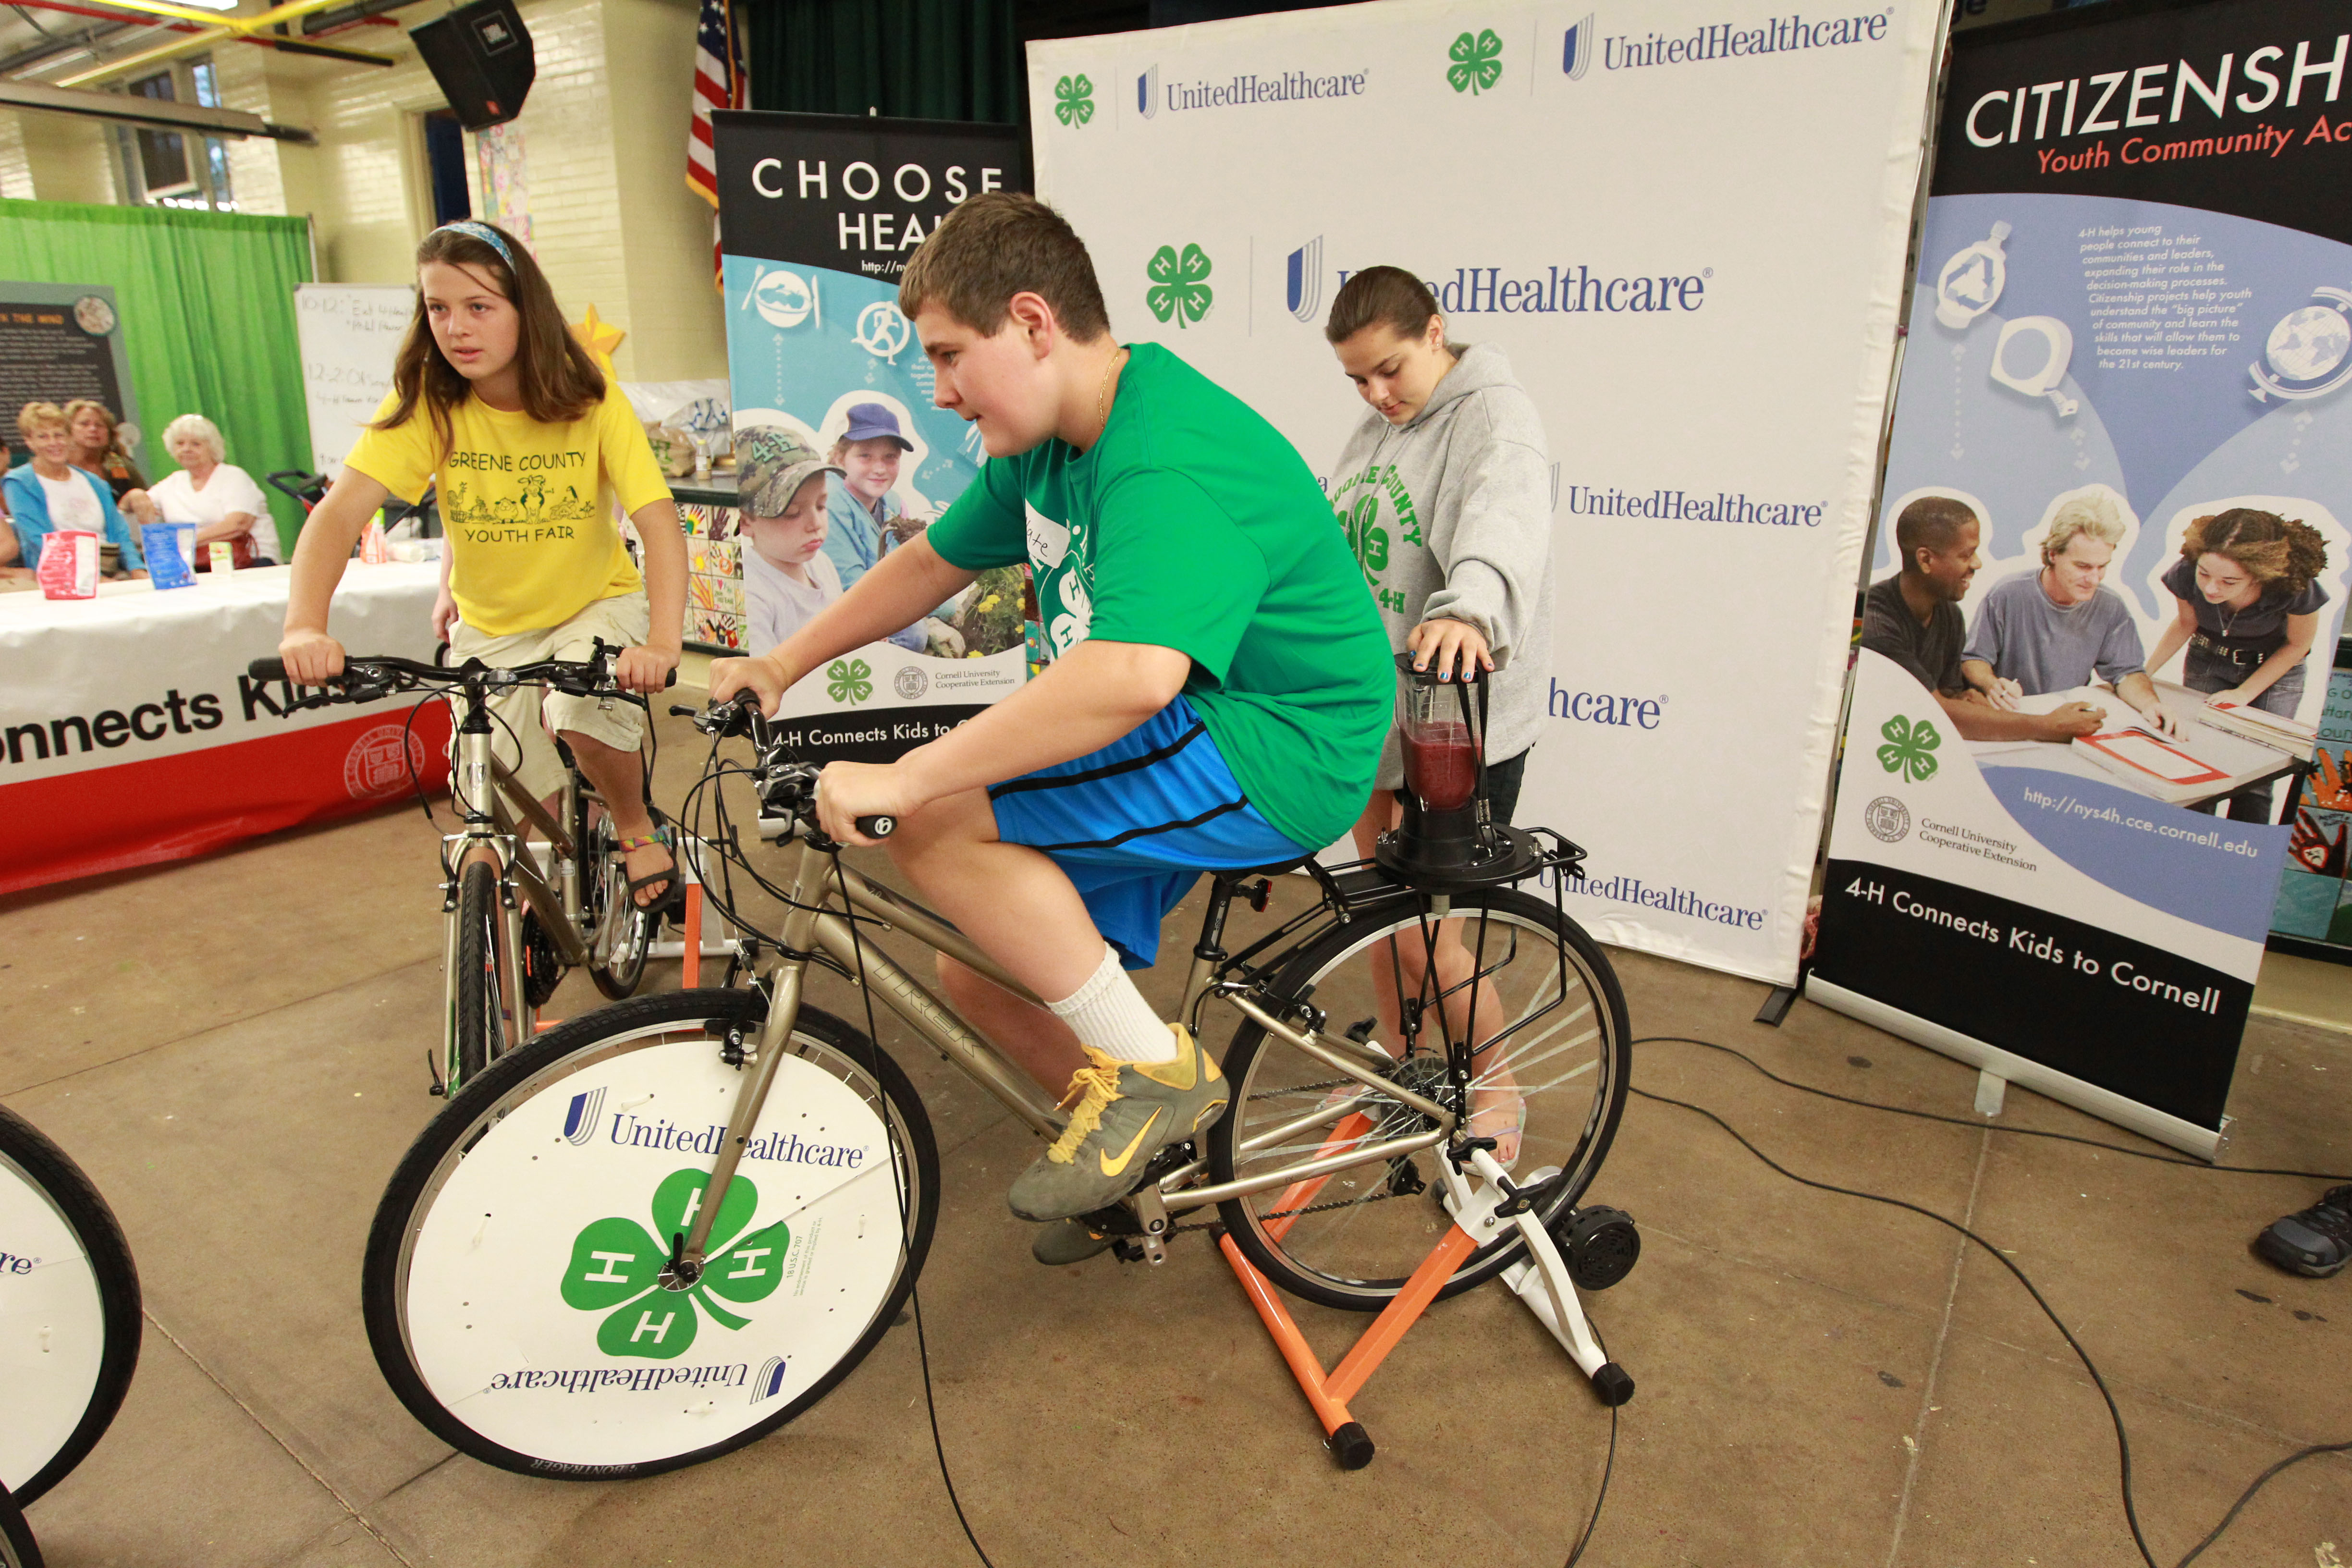 """4-H Youth Health Ambassadors Zaia Ivan from Greene, N.Y. (left), and Nate Edwards from Morris, N.Y. (center), create their own smoothies using pedal power at the annual New York State Fair in Geddes, near Syracuse, on Aug. 21. The smoothie bikes are part of 4-H and UnitedHealthcare's partnership called """"Eat4-Health,"""" which helps tackle obesity by promoting healthy eating and lifestyles among youth and families (Photo: Michael J. Okoniewski for UnitedHealthcare)."""